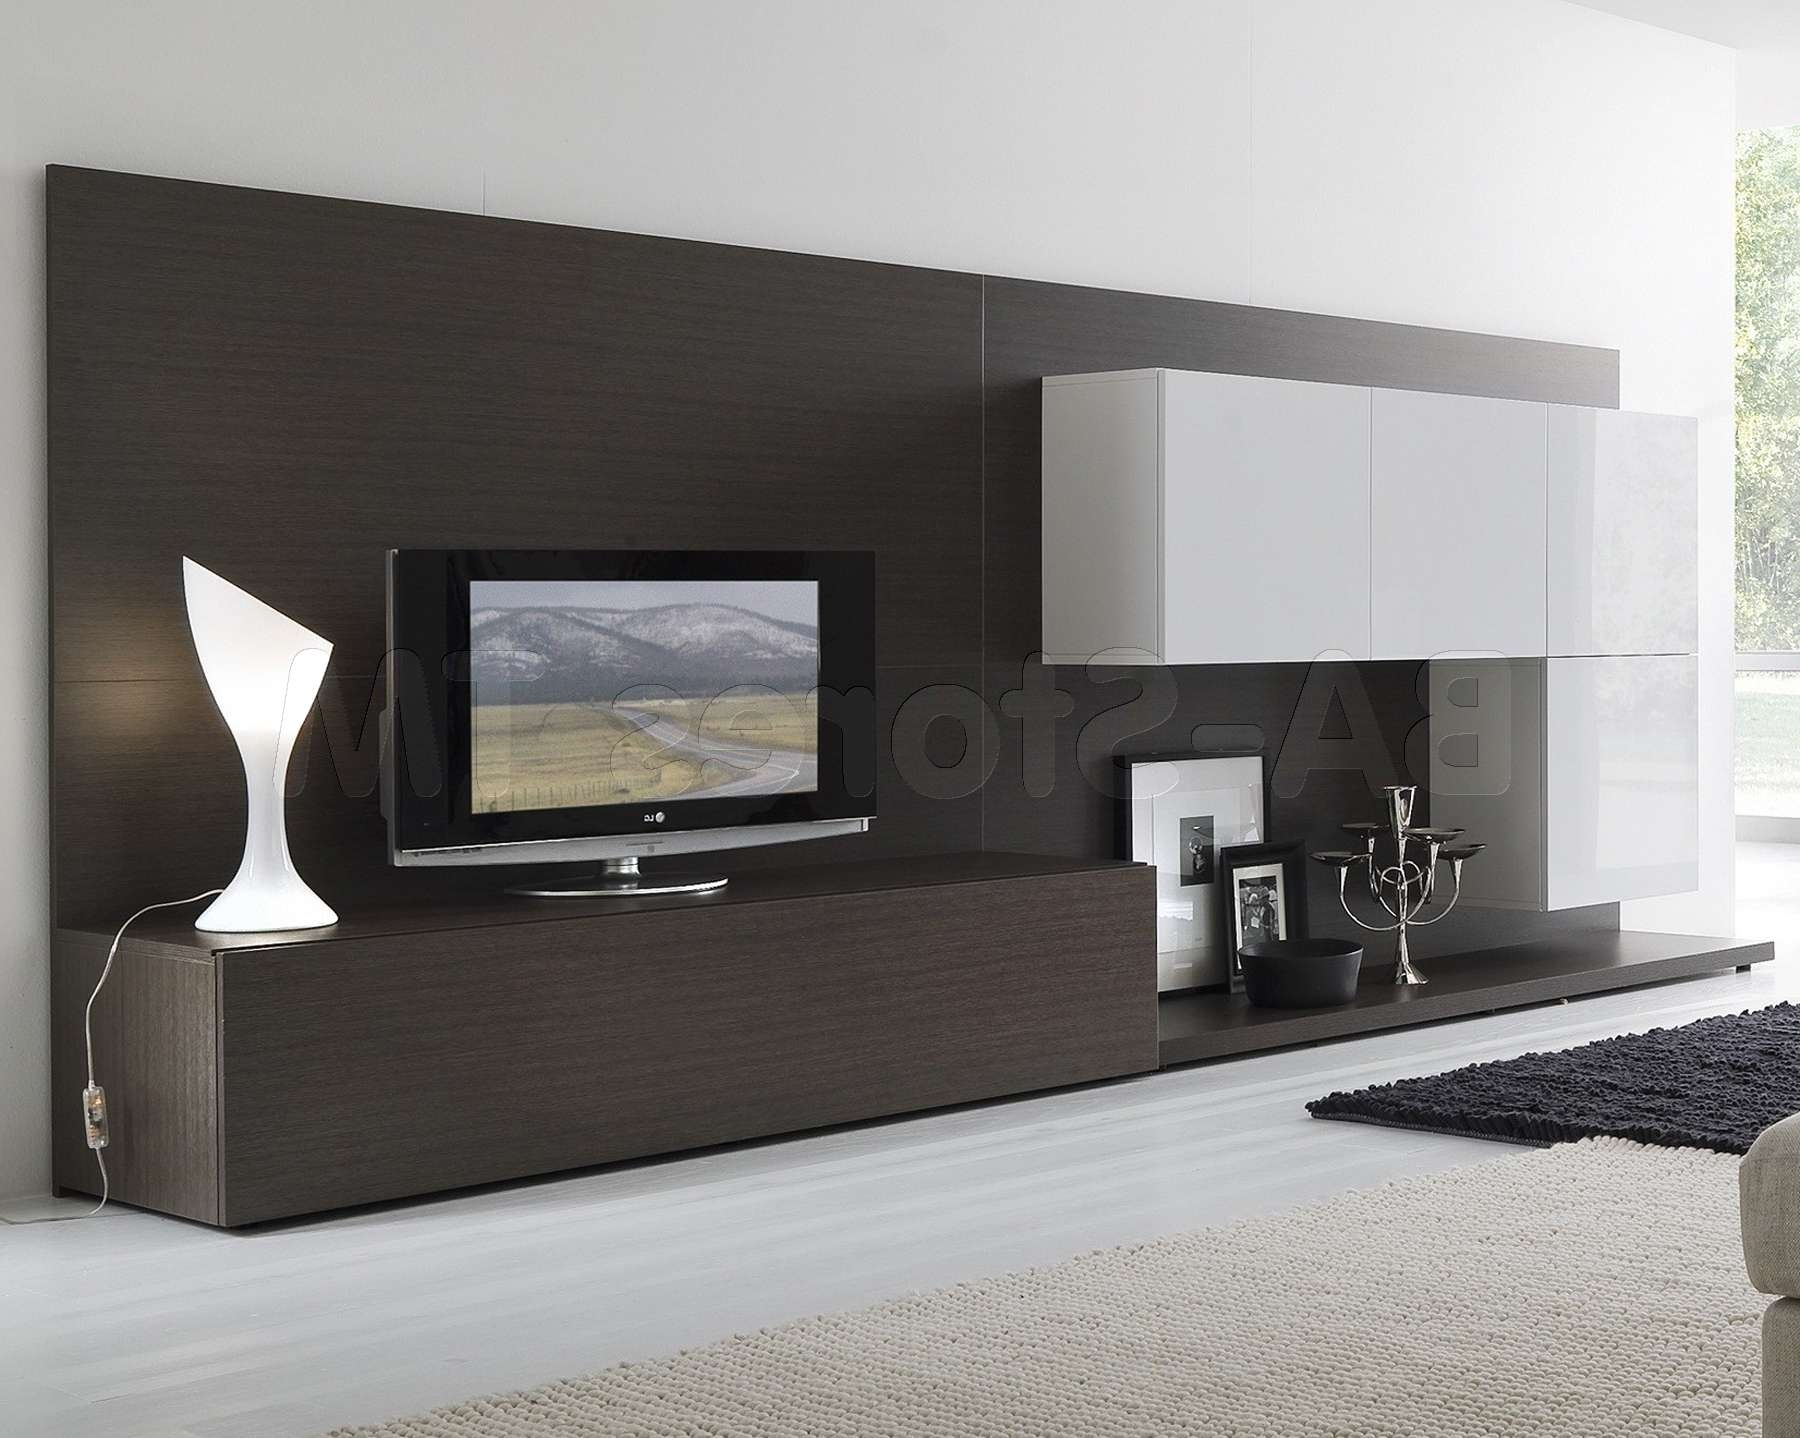 White And Black Wooden Cabinet With Rectangle Flat Screen Tv And Within Modern Tv Cabinets For Flat Screens (View 19 of 20)